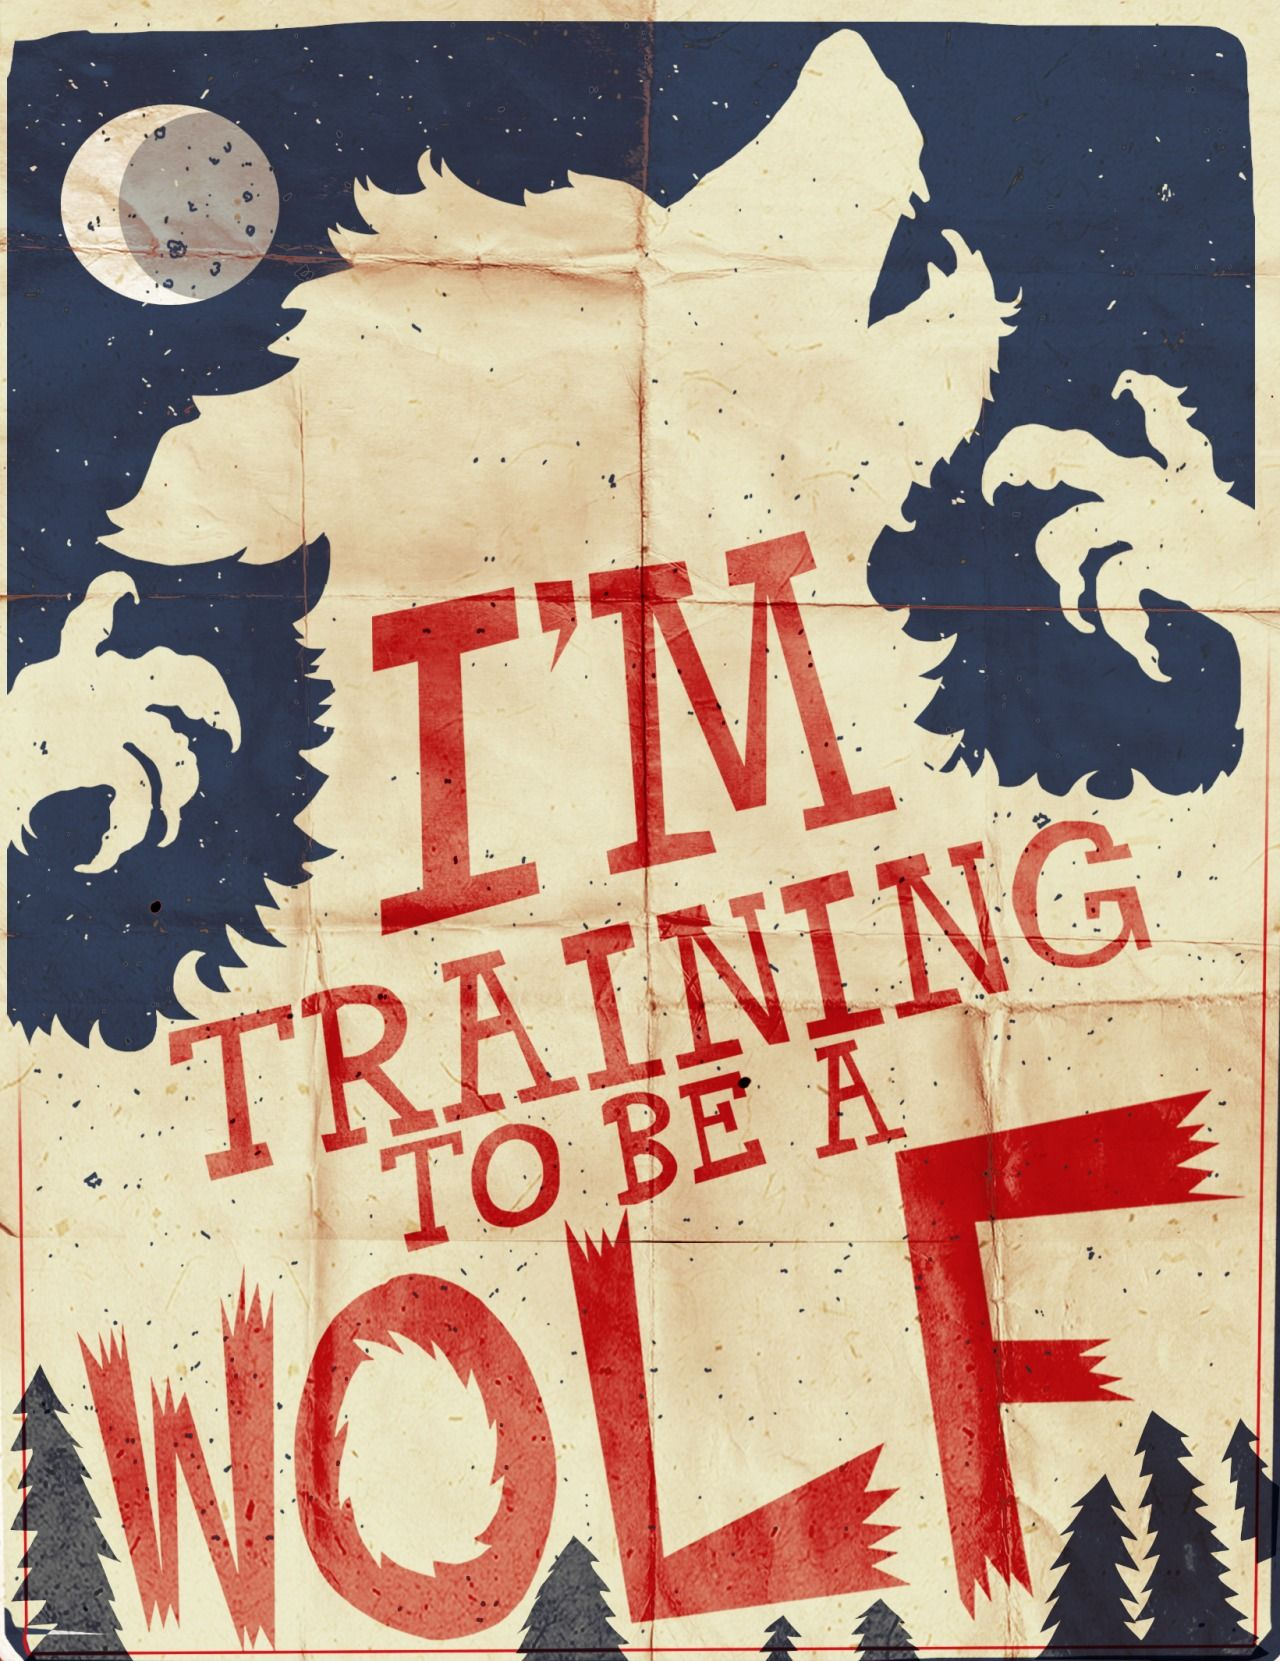 The full quote was - I'm training to be a wolf that just walks around. It makes sense though her mother trained her to howl at the moon when she was about 8 months old and she's done it ever since.